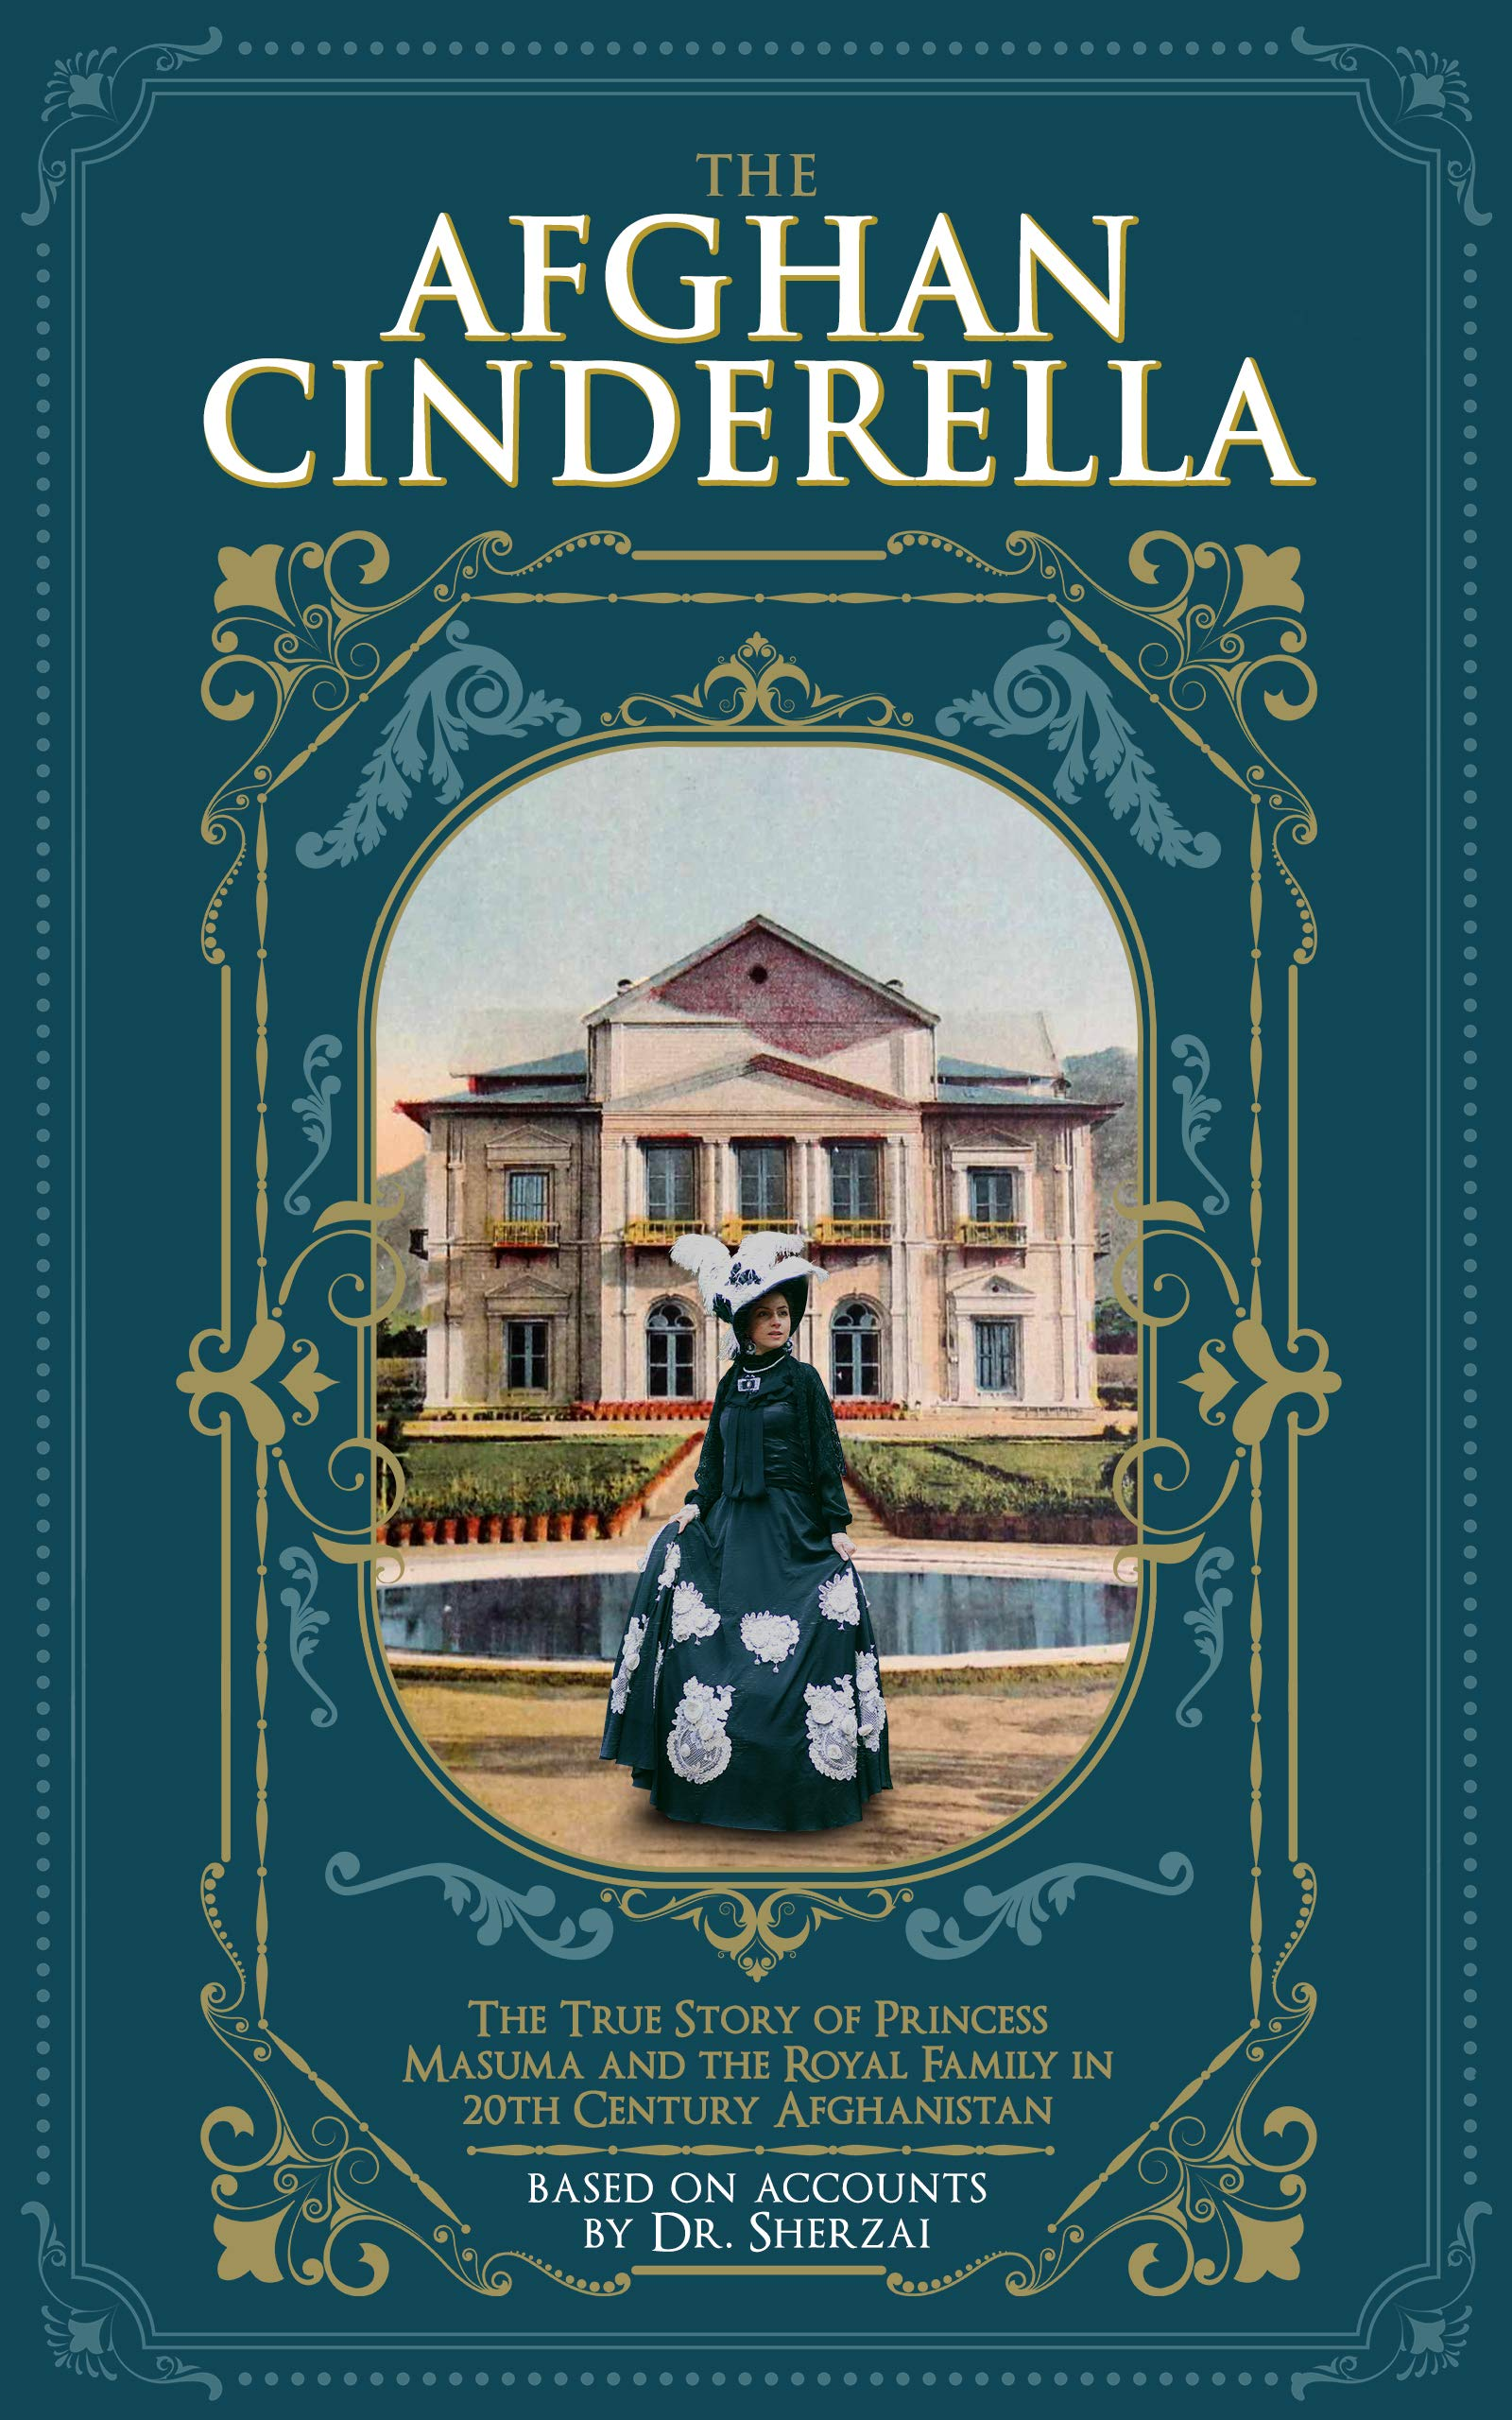 The Afghan Cinderella: The True Story of Princess Masuma and the Royal Family in 20th Century Afghanistan